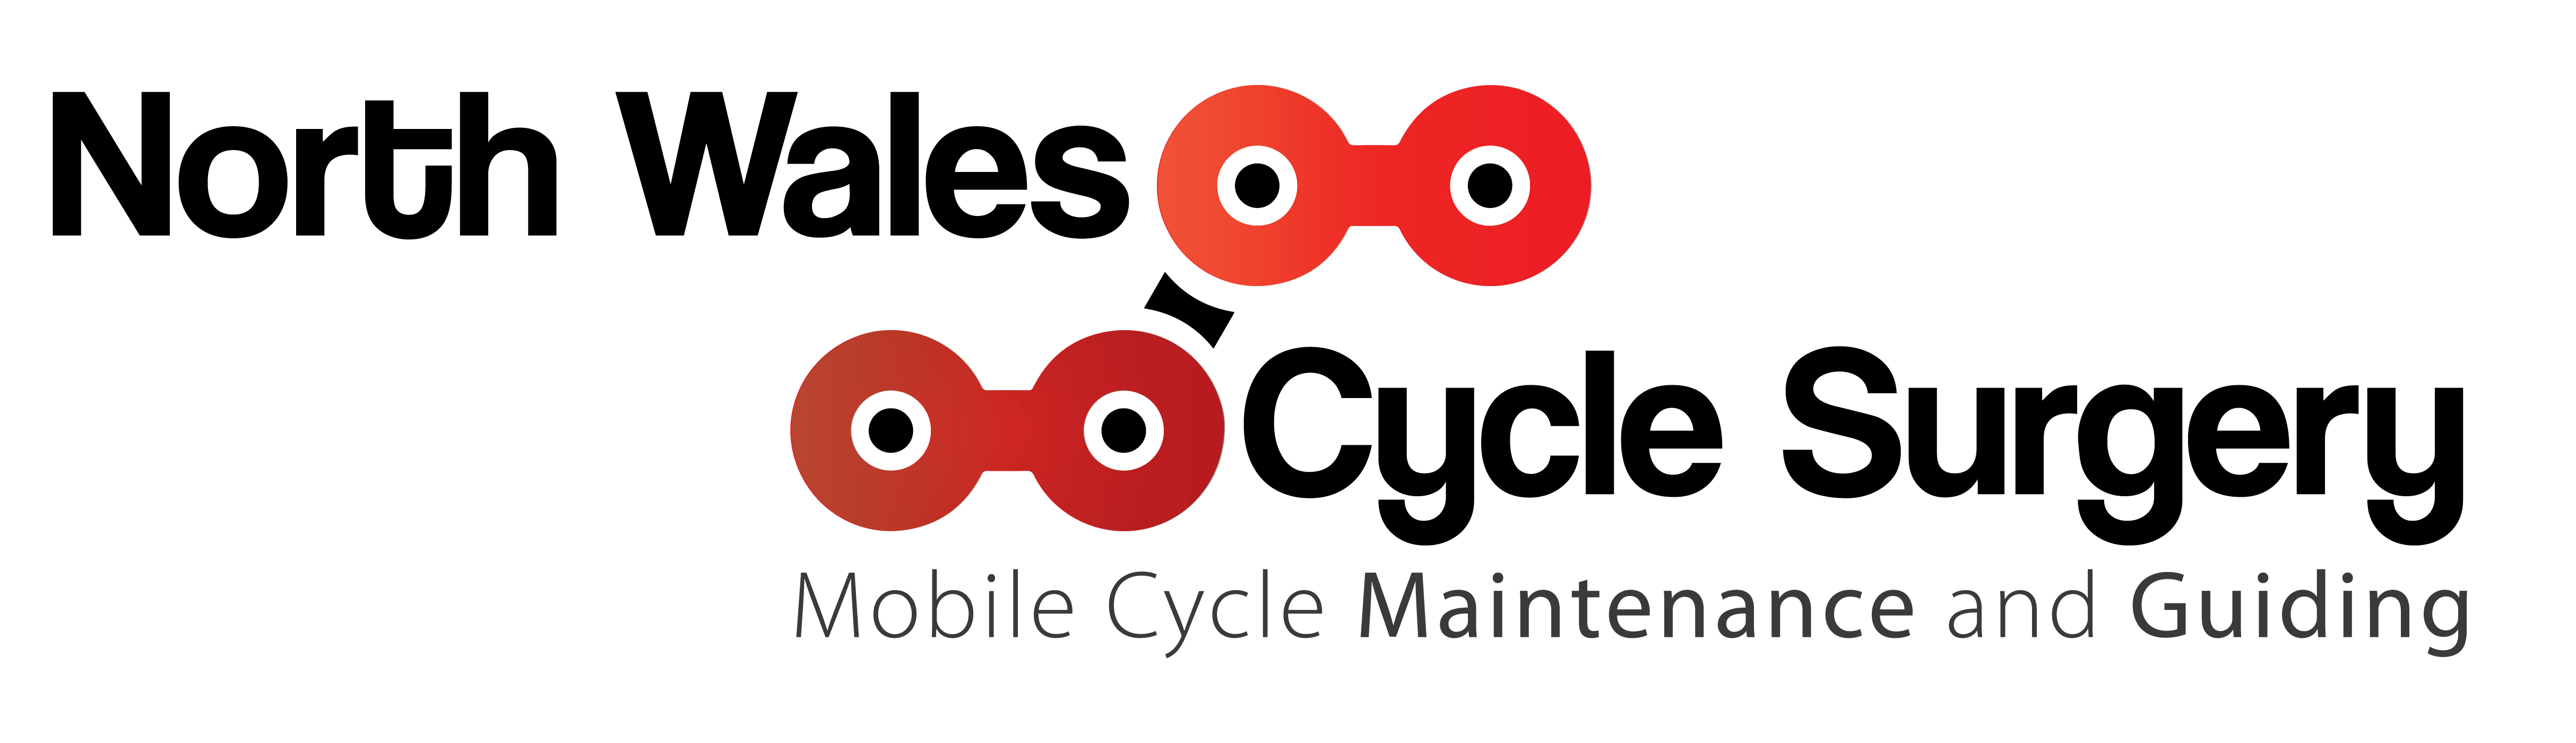 North Wales Cycle Surgery - Bike Repairs Abergele, North Wales